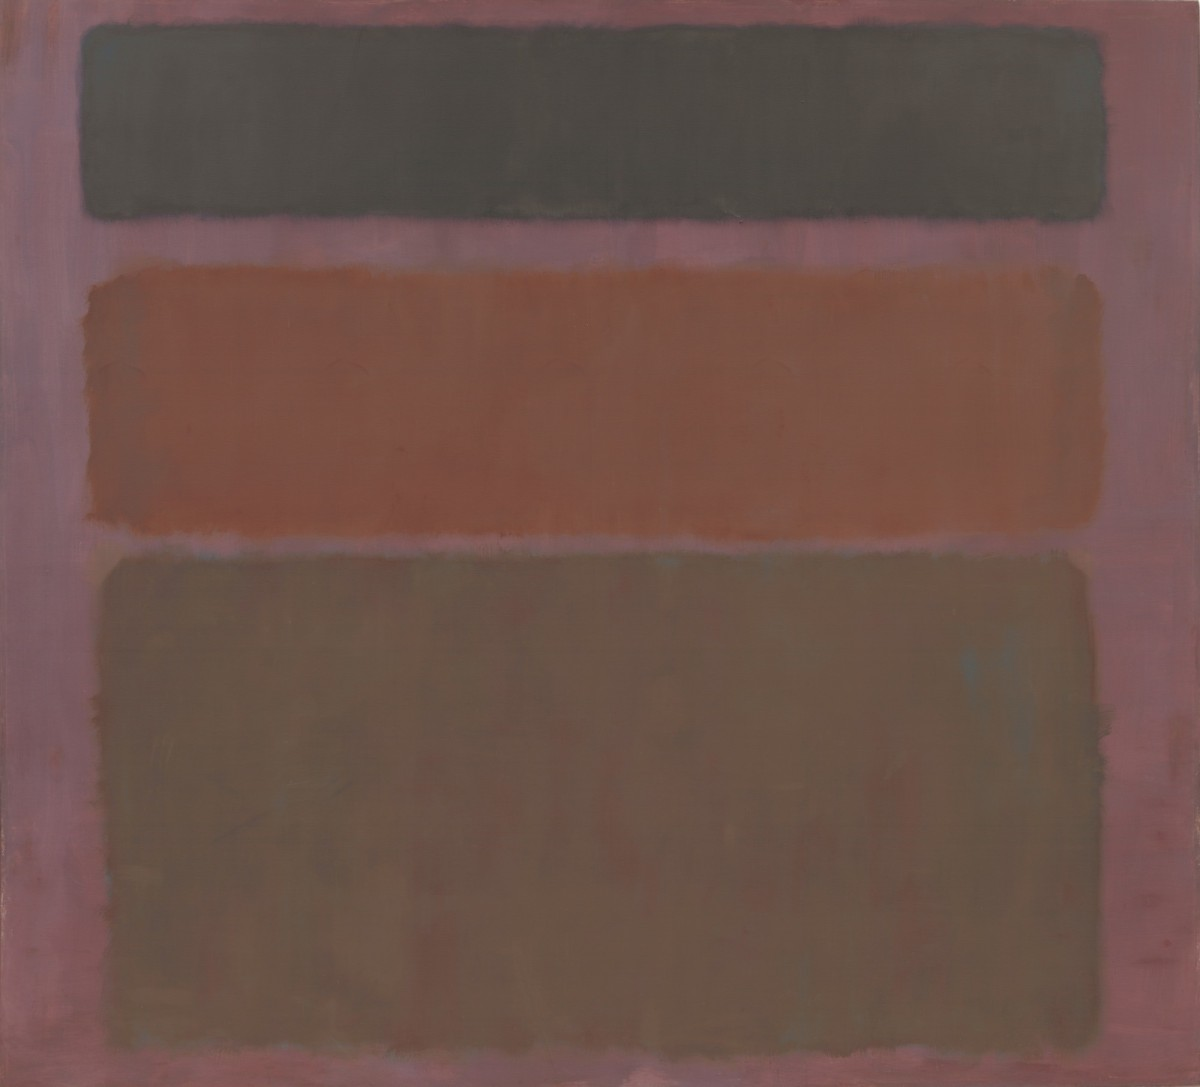 Mark Rothko No. 16 (Red, Brown, and Black) 1958